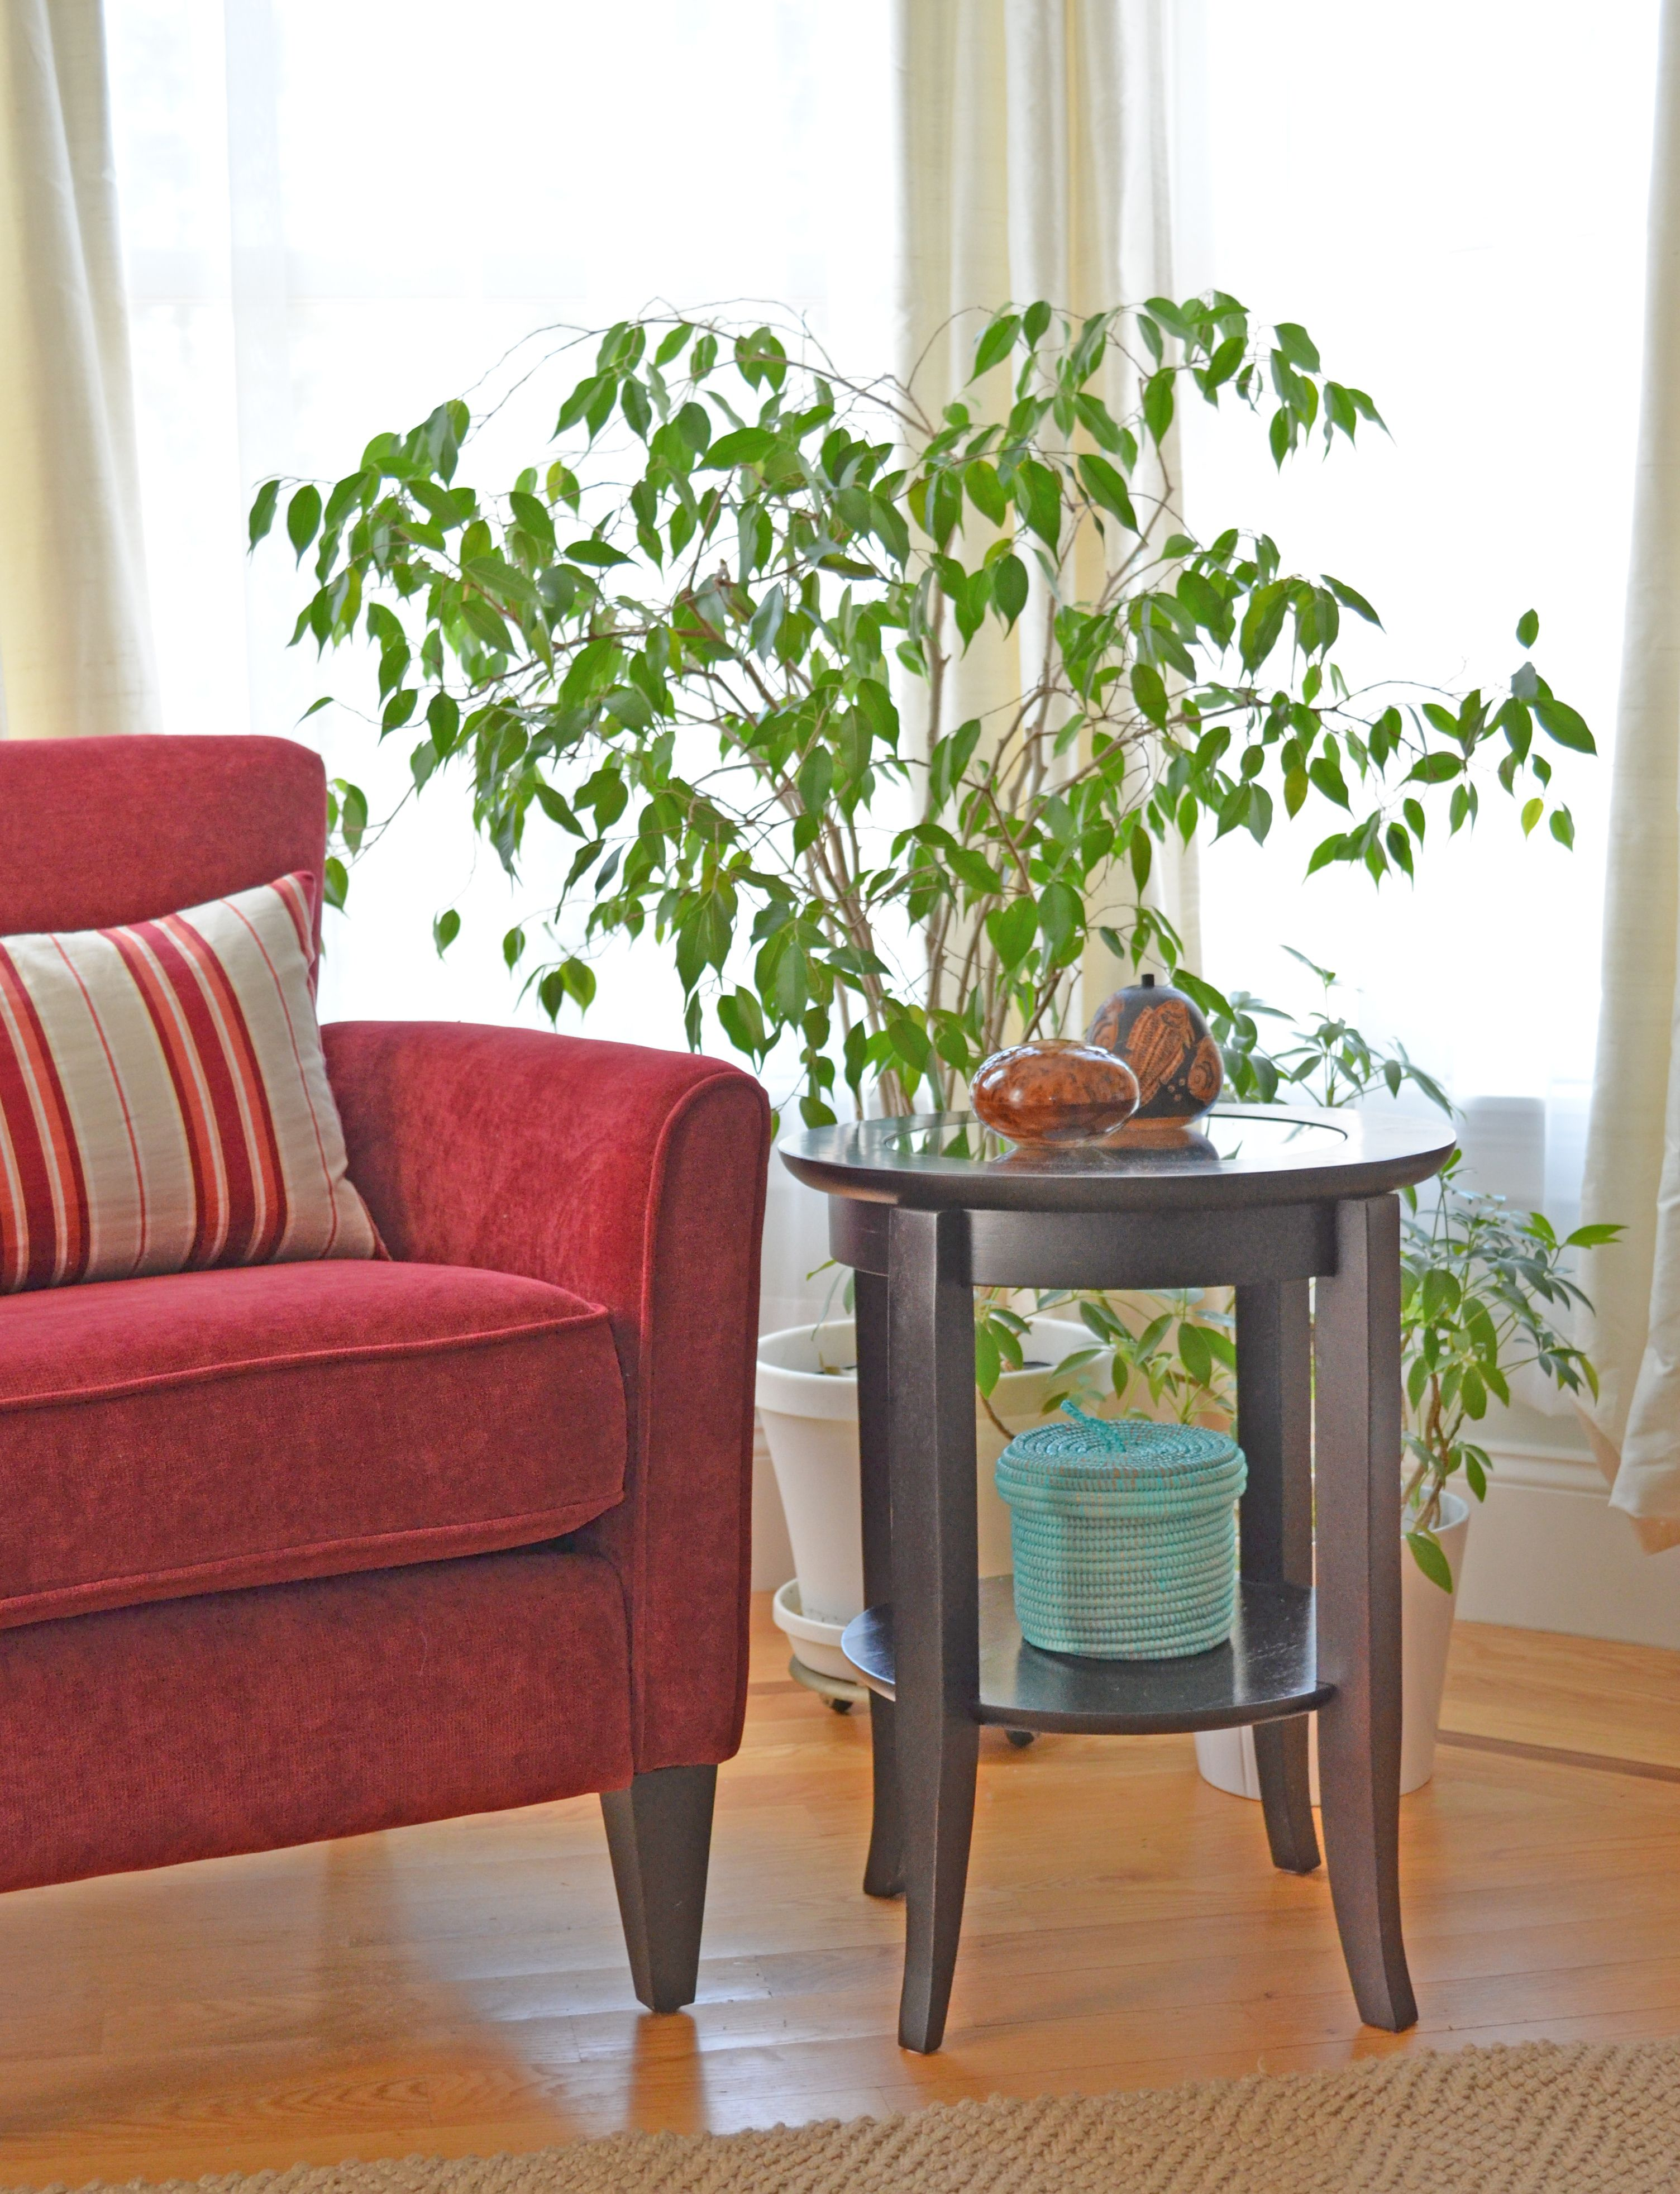 Adding some interest to a side table in a bright corner of the room. http://www.dogwoodbox.com/